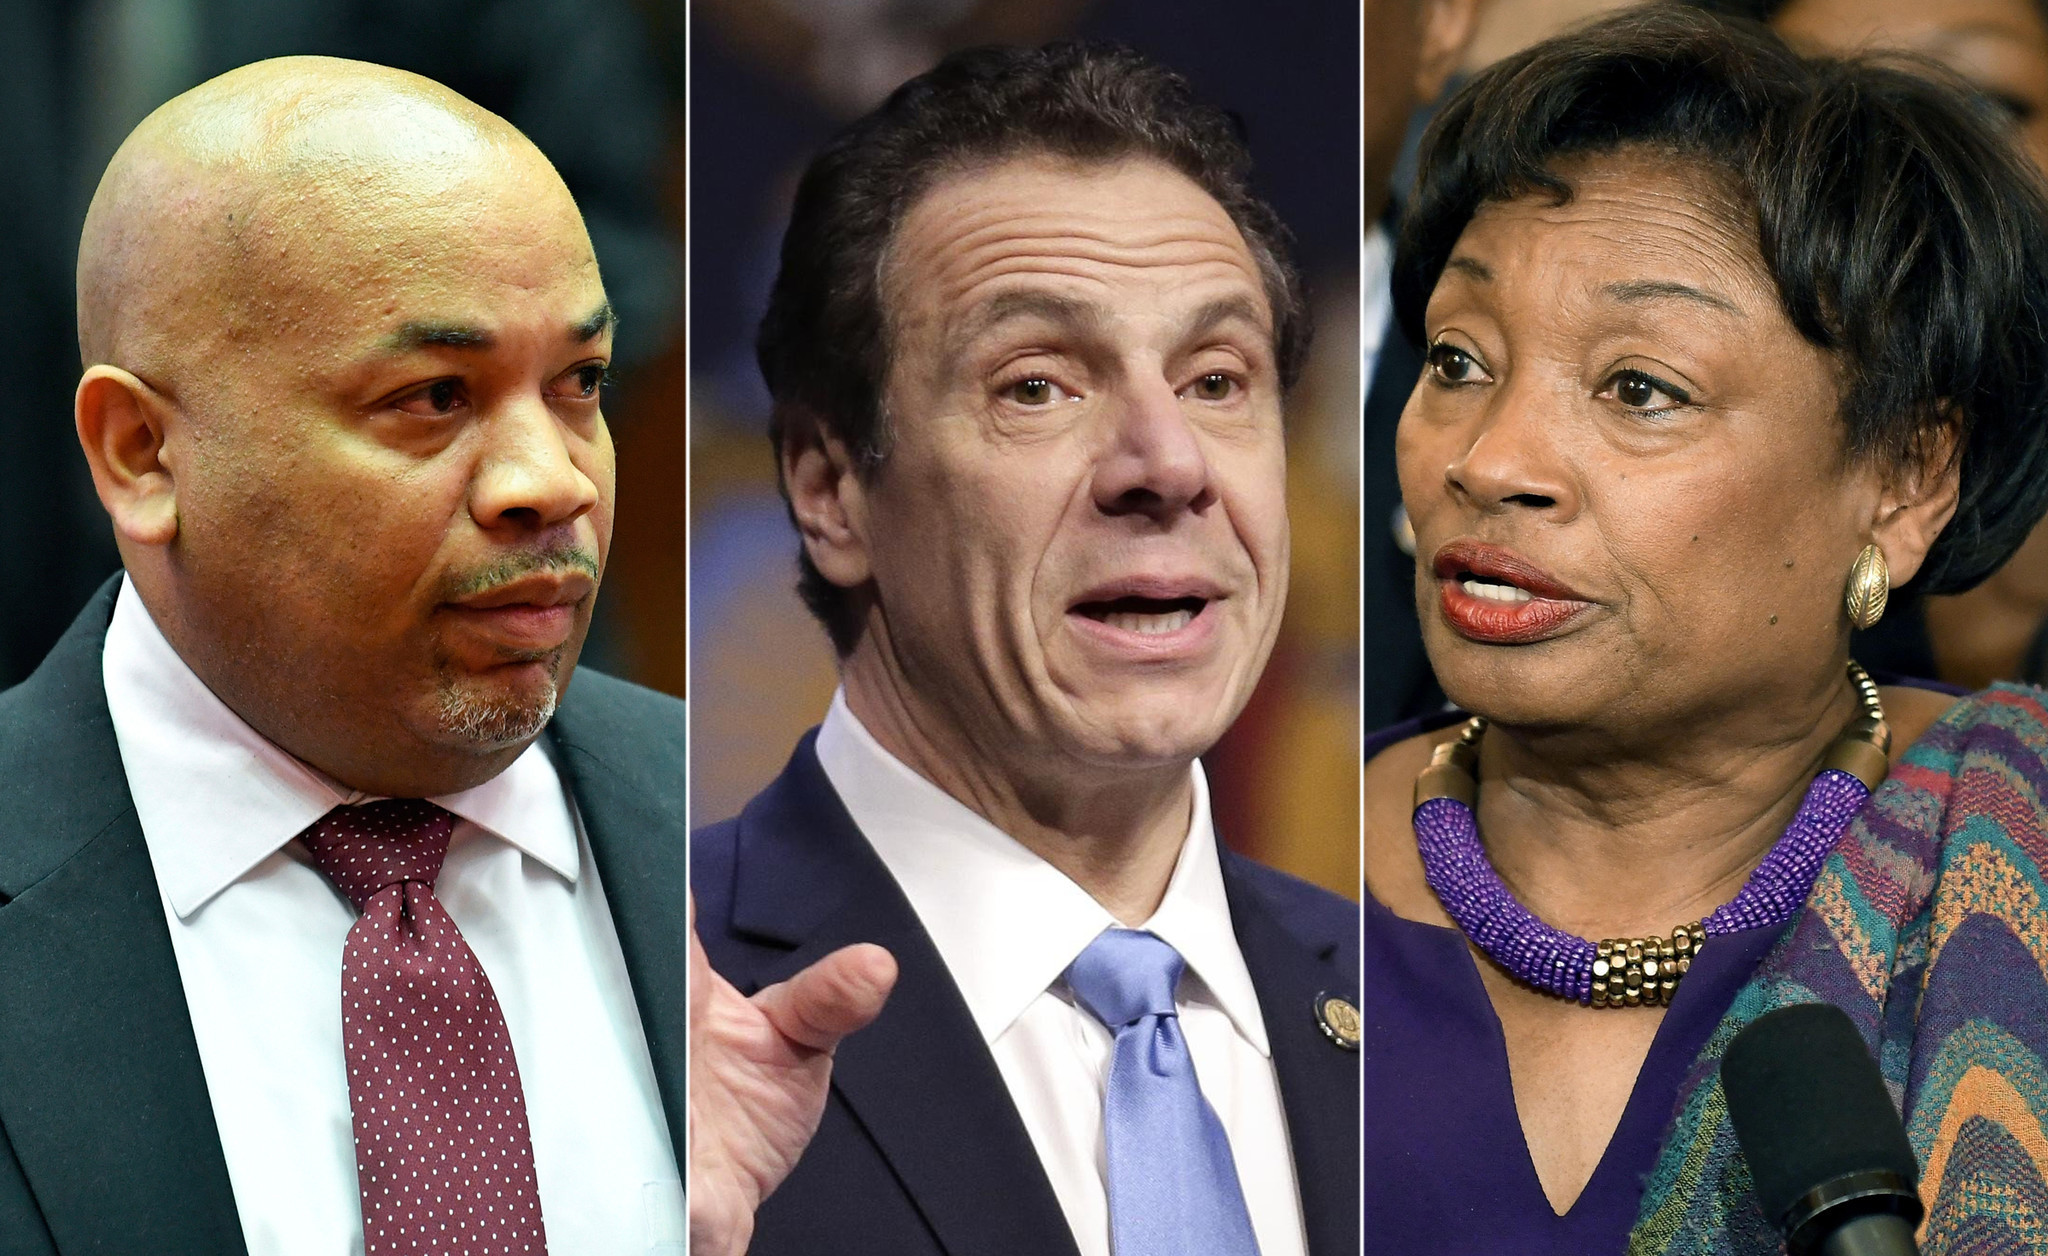 Cuomo calls bail reform 'ongoing process' in budget address as Senate Dem leader meets with prosecutors